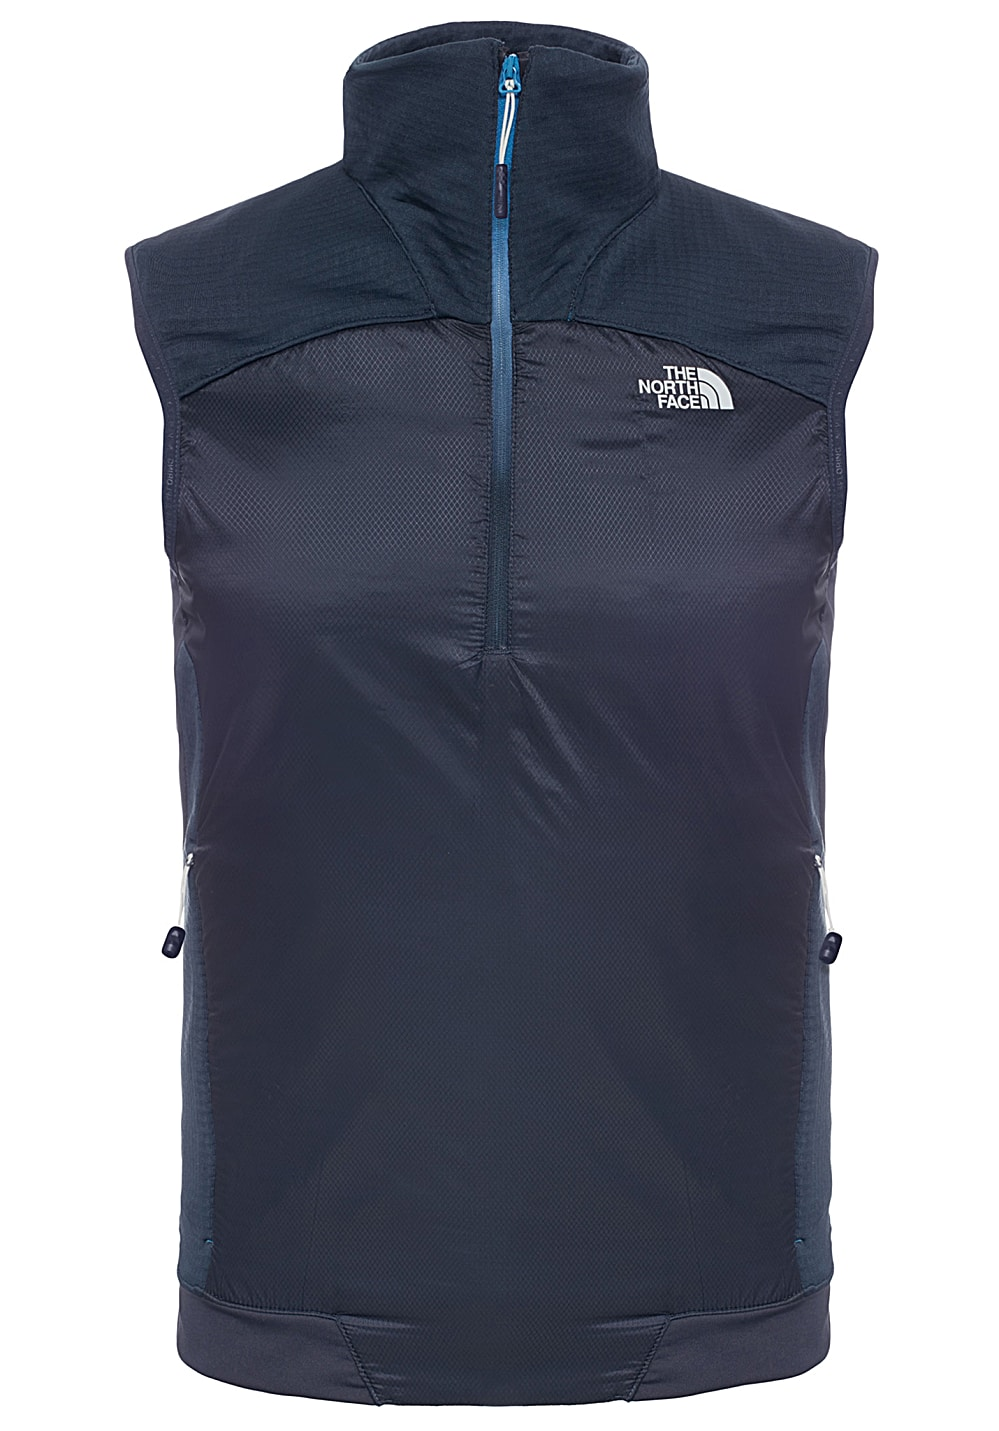 The North Face Kokyu 1/2 Zip - Weste für Herren - Blau - S